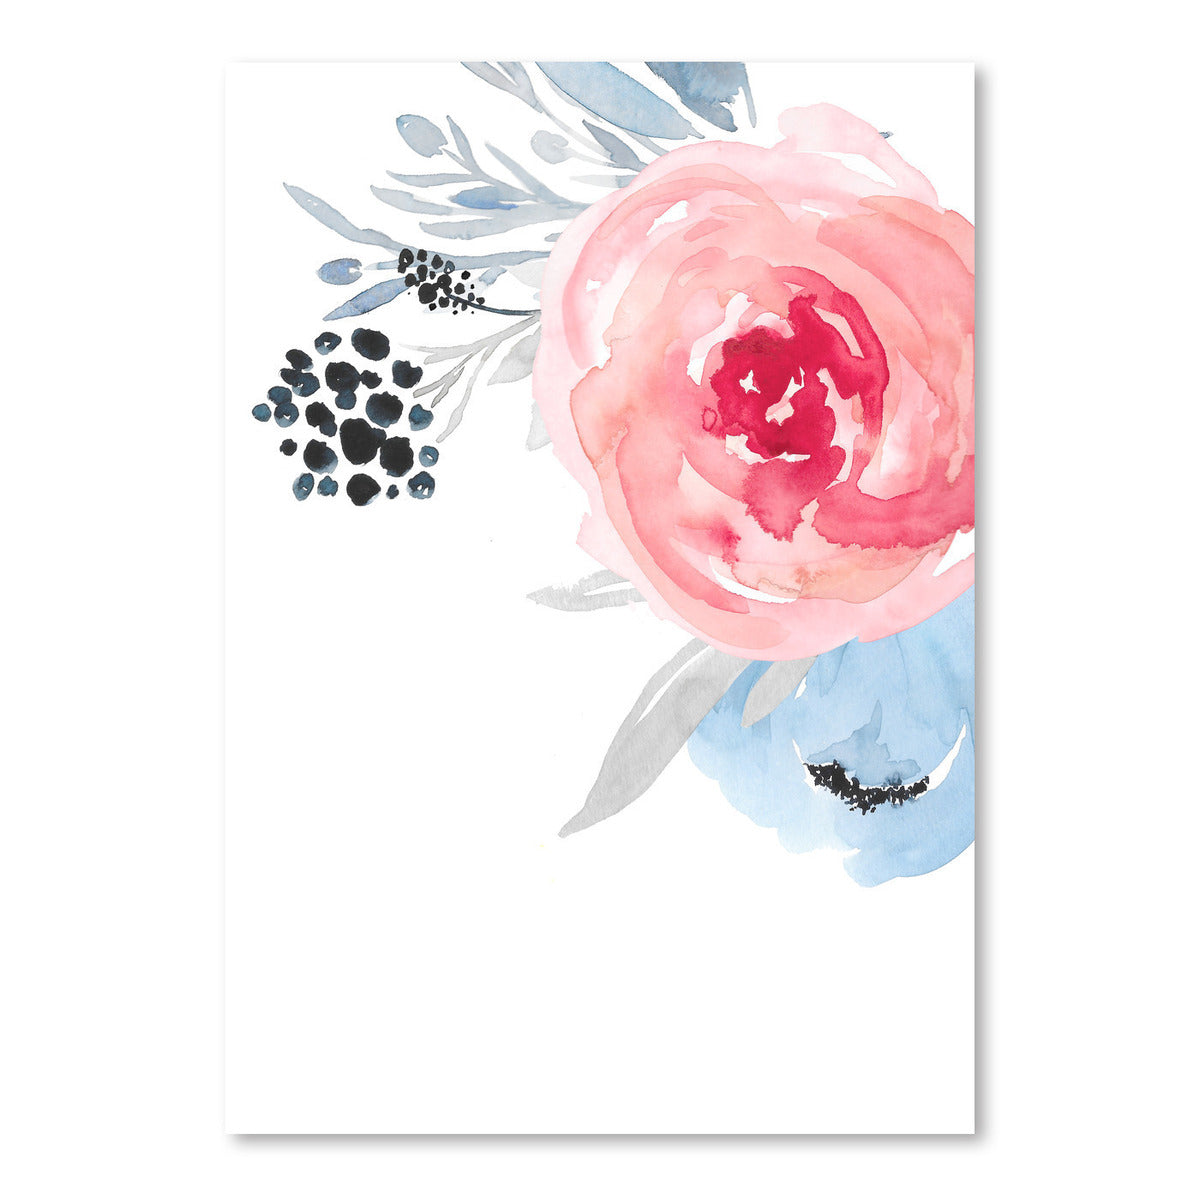 Navy Floral Big On Right by Wall + Wonder - Art Print - Americanflat